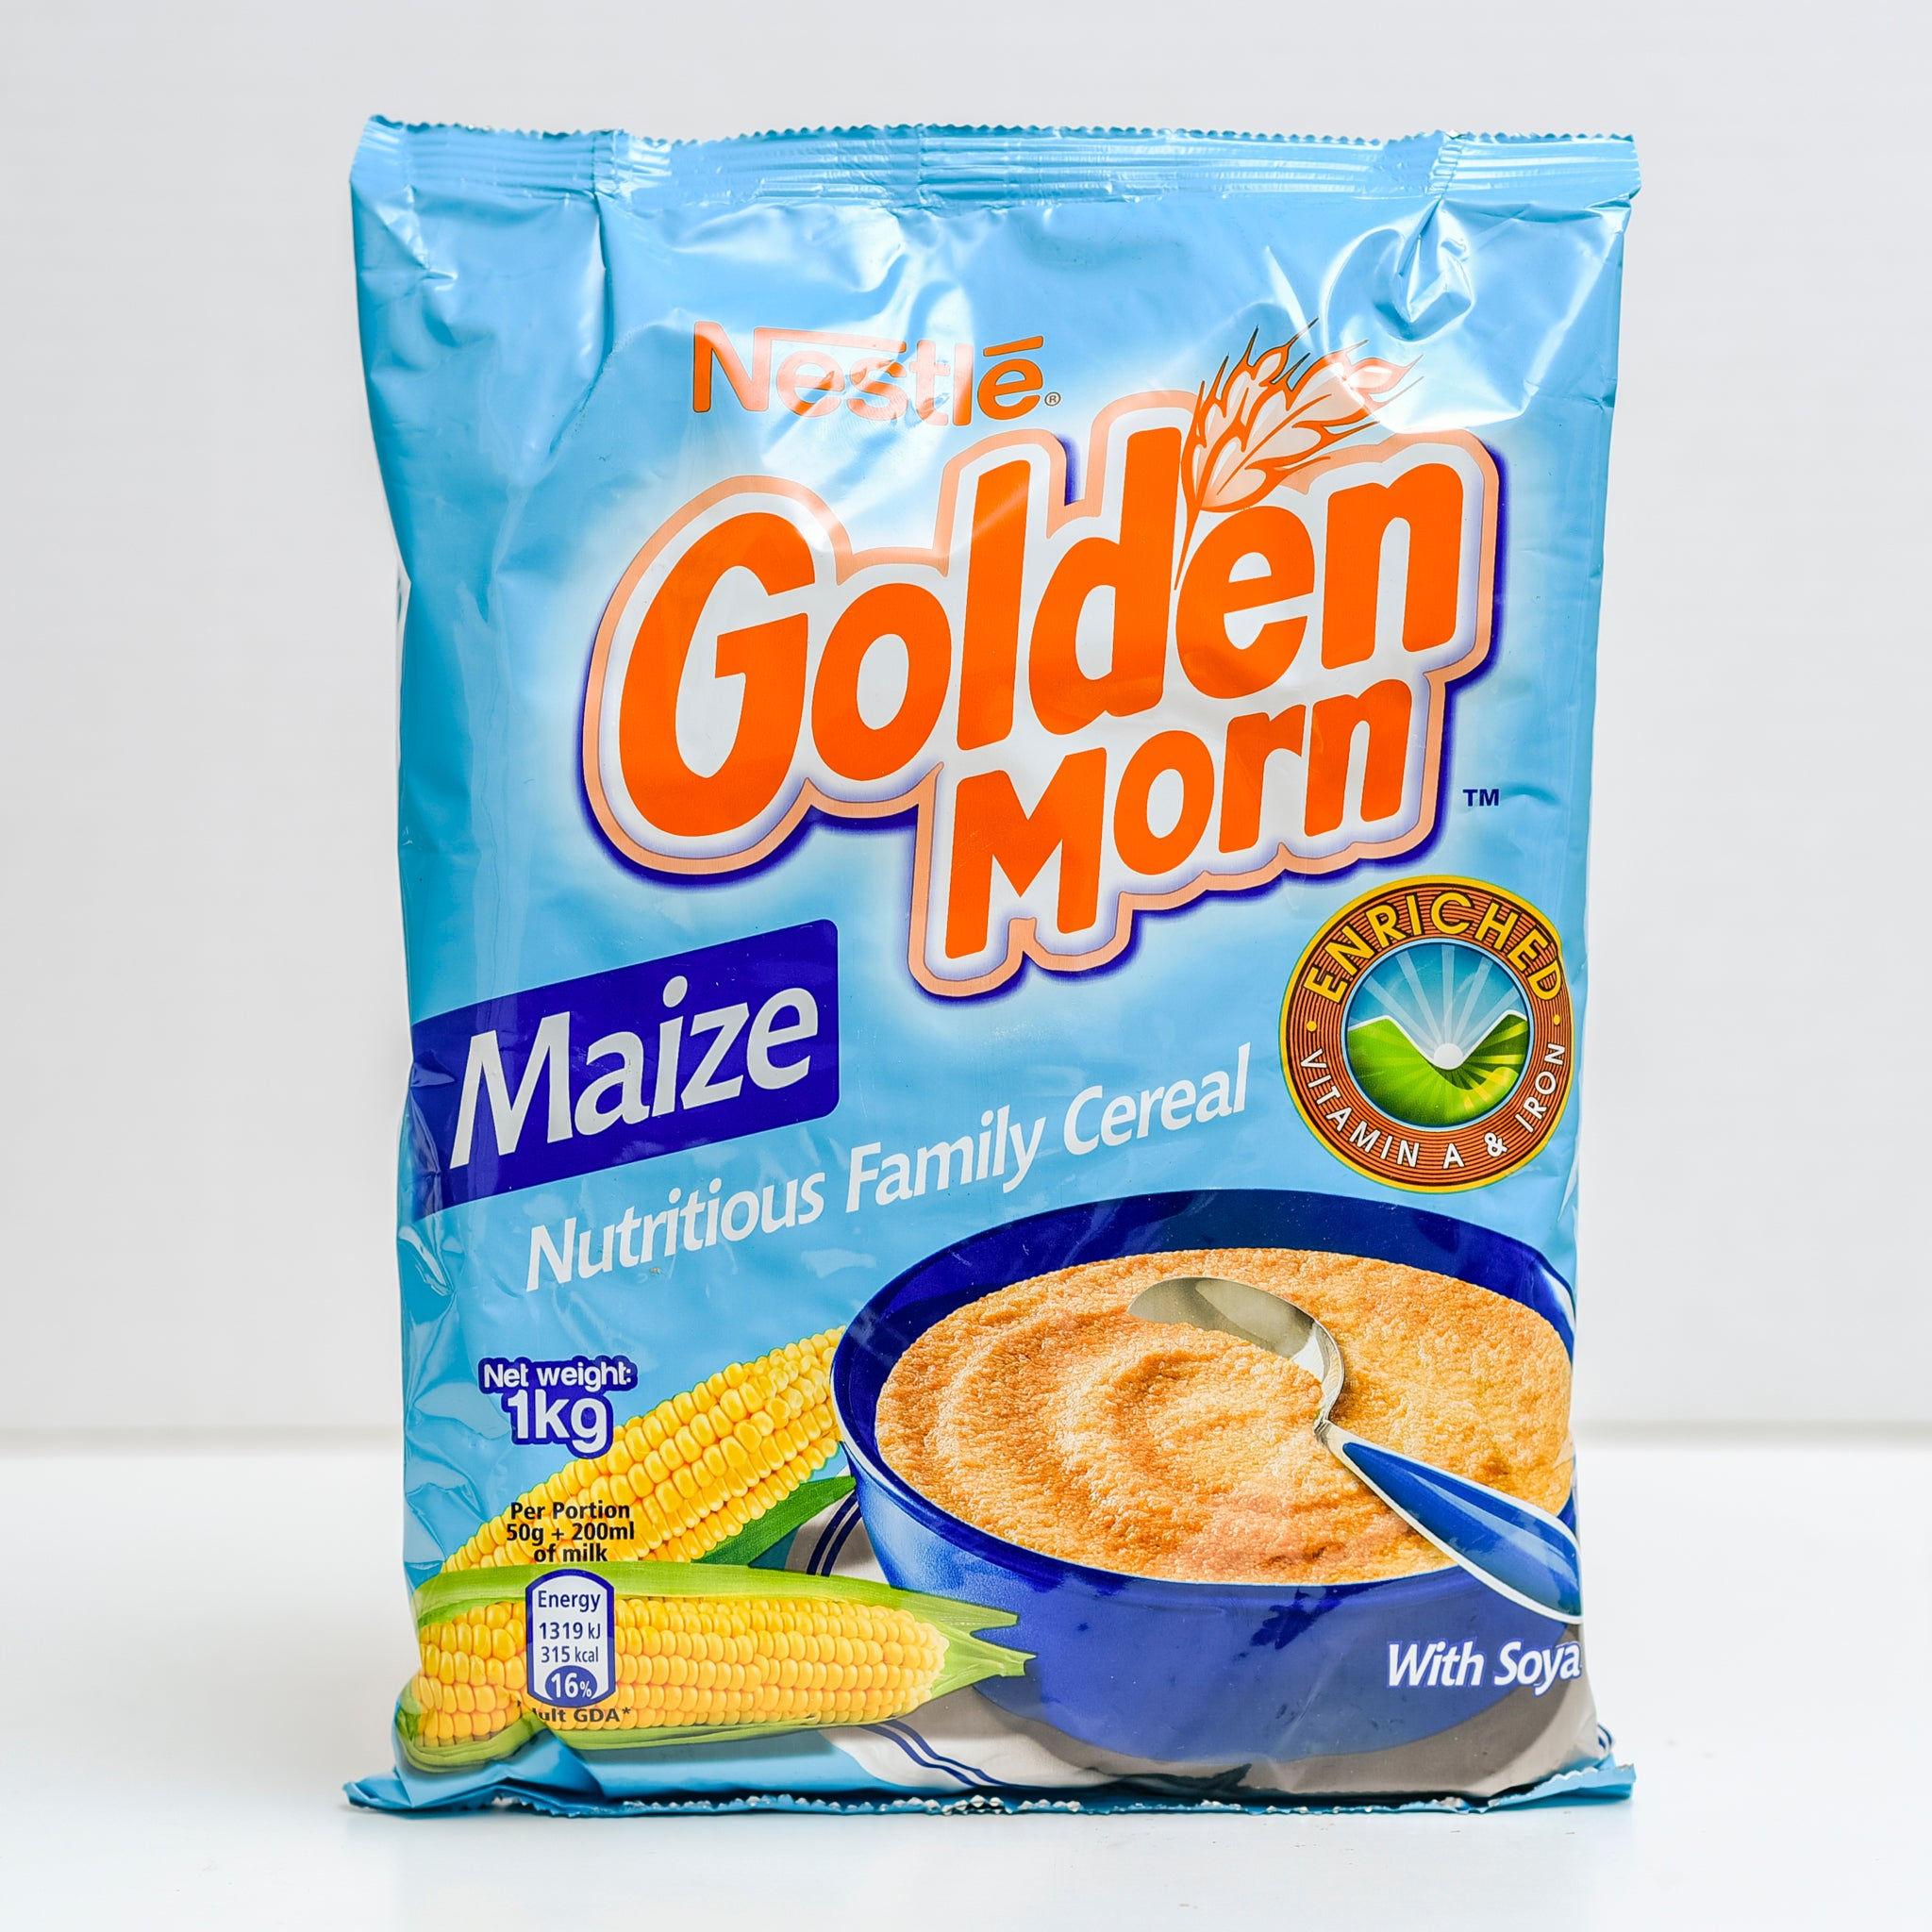 Golden Morn Cereal